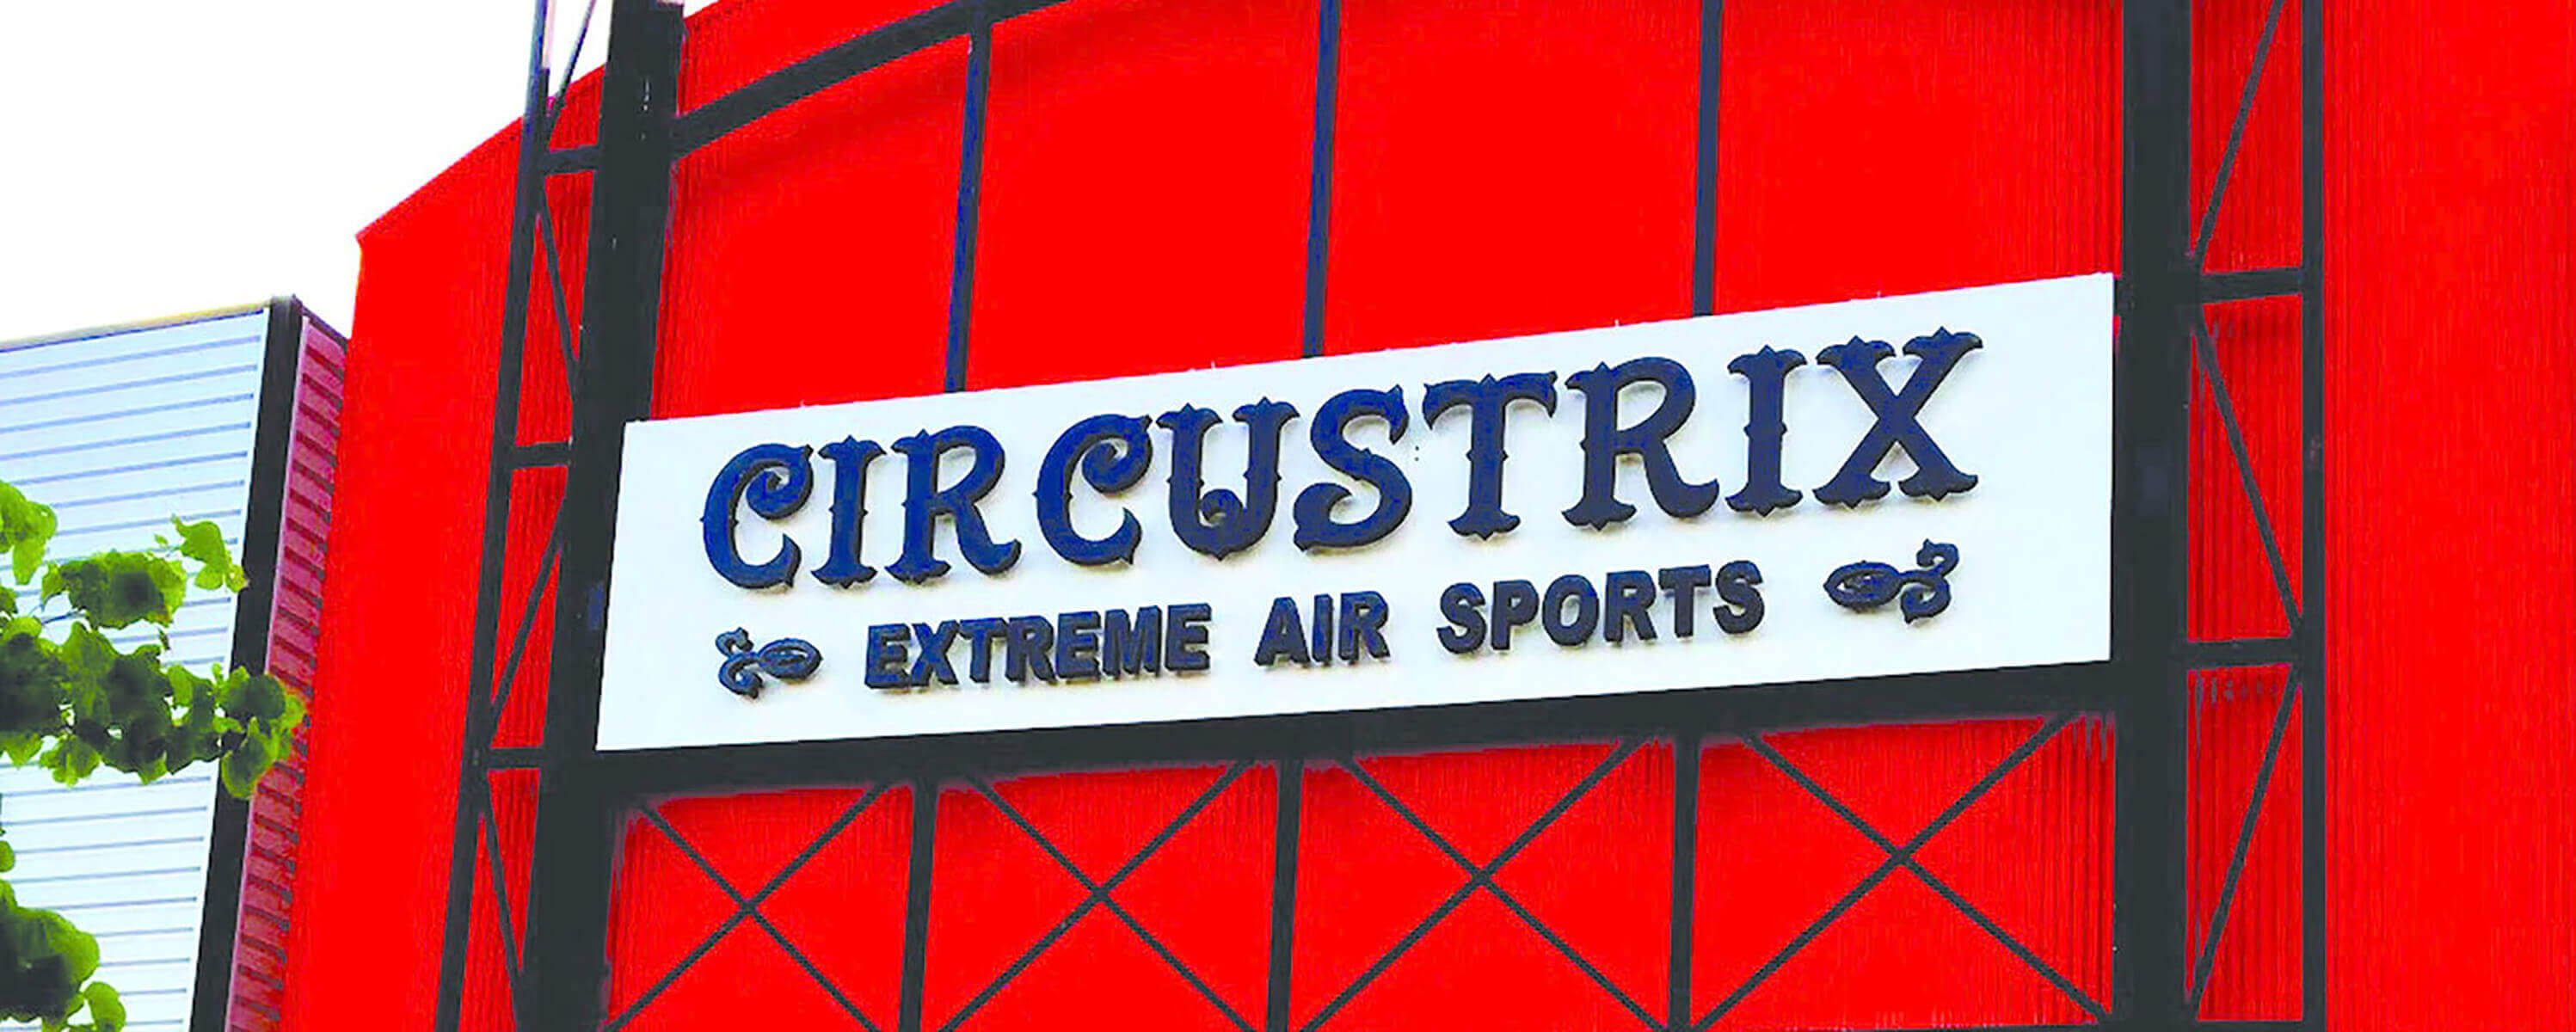 CircusTrix chooses ELI Play as trampoline supplier